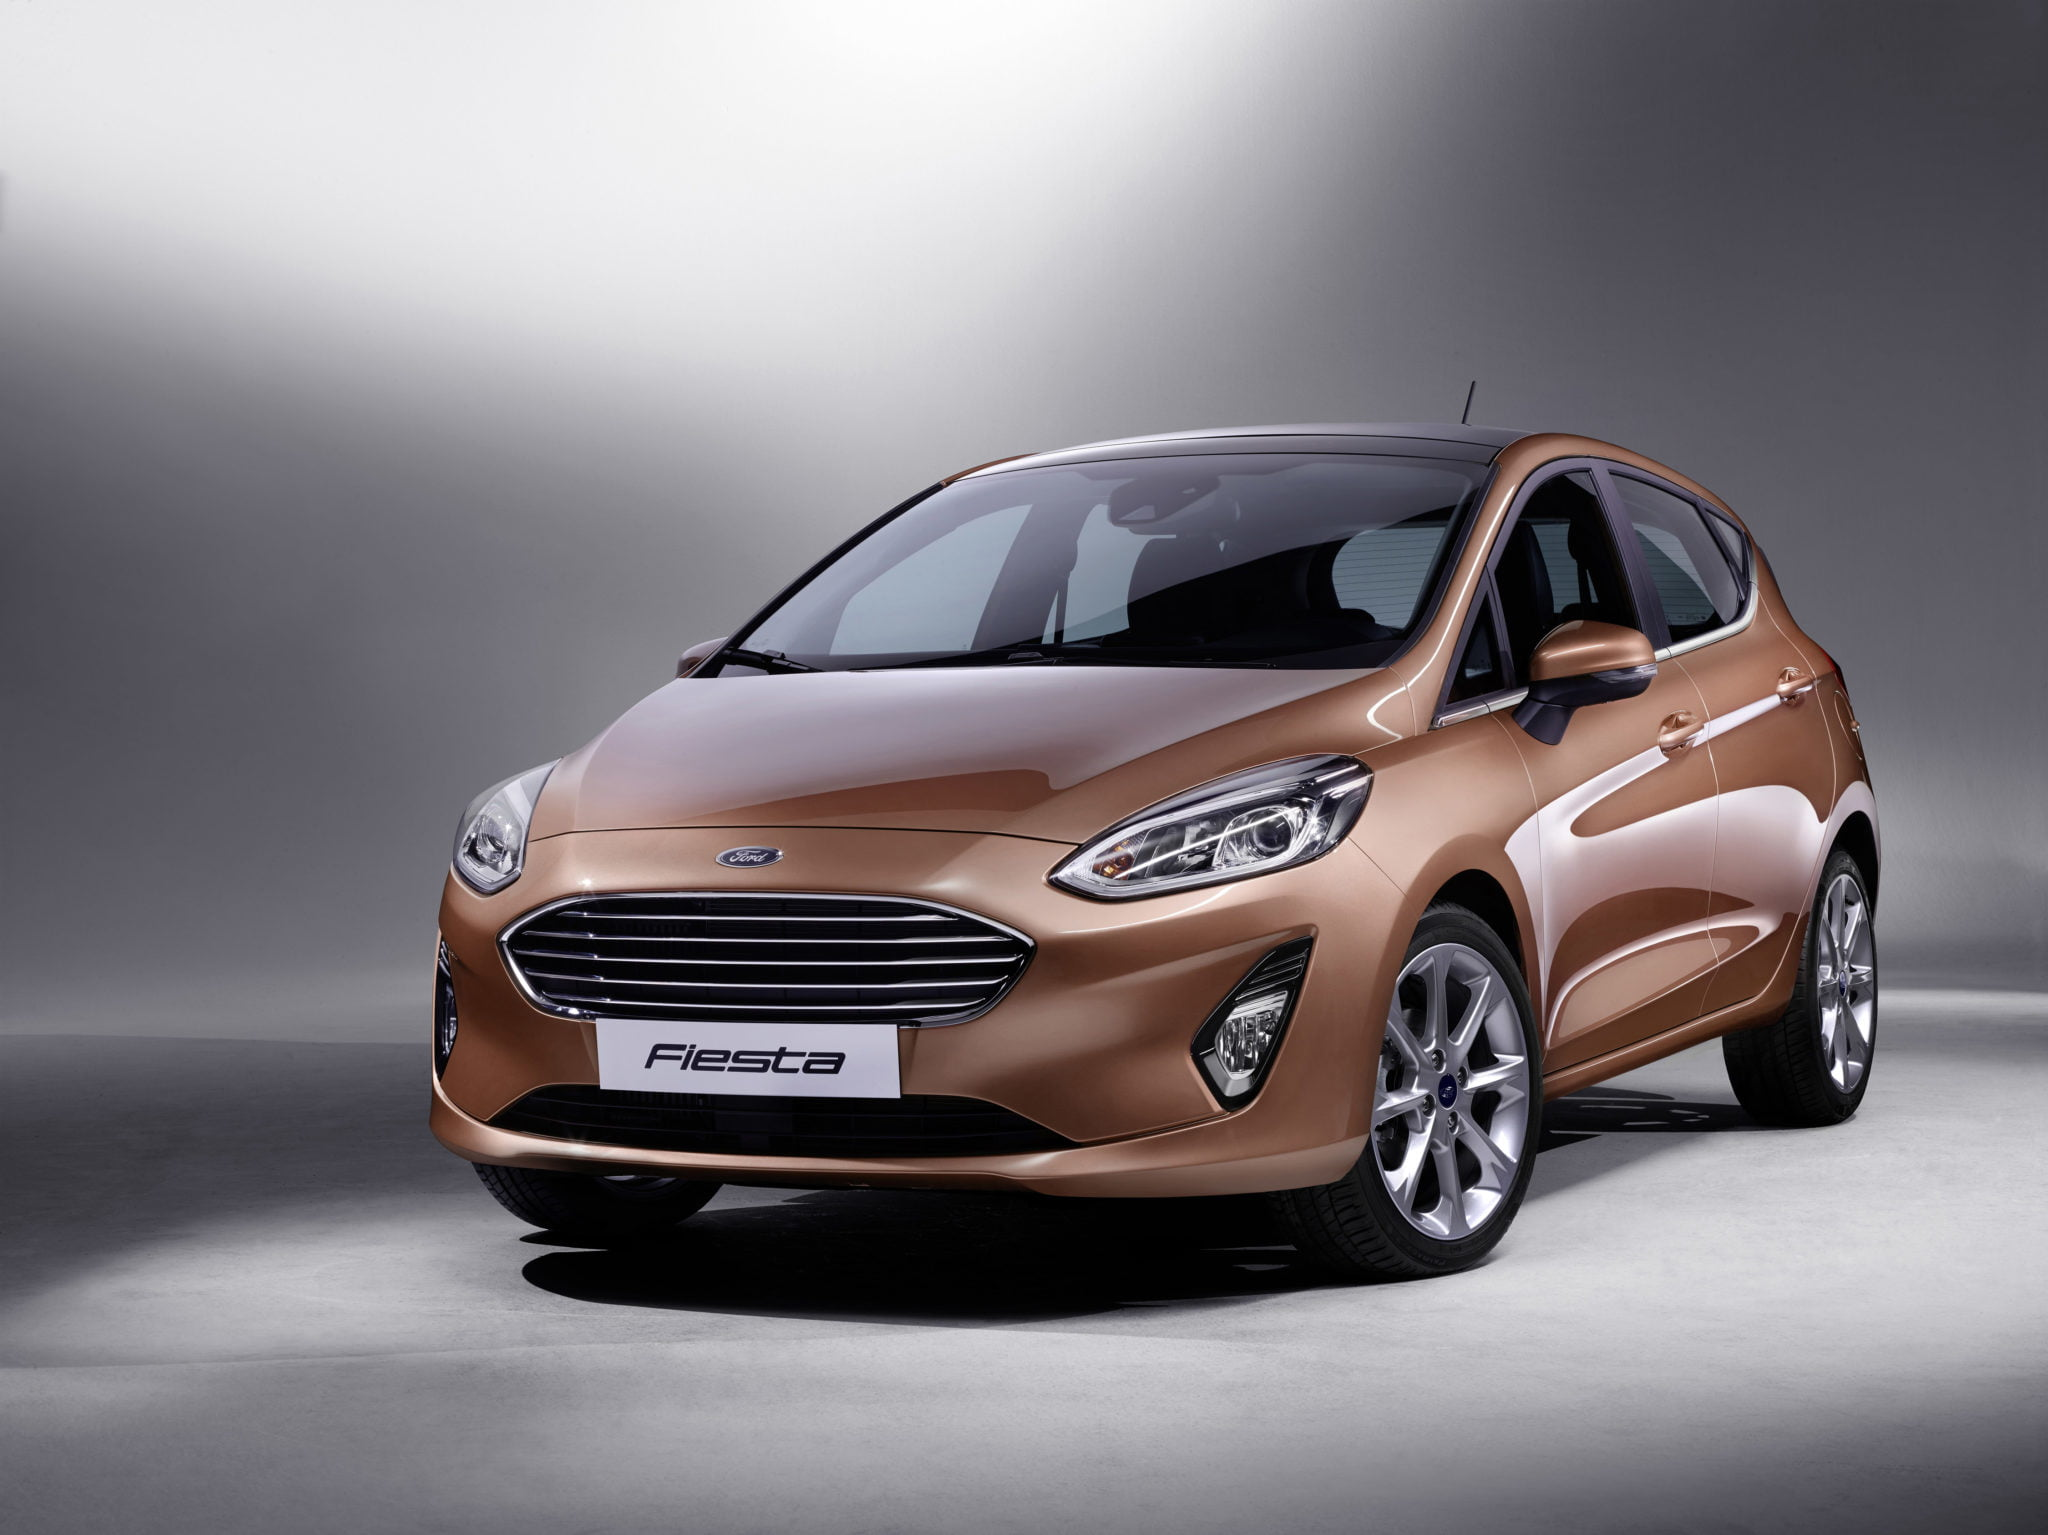 Ford Fiesta Private Leasen - LeaseRoute